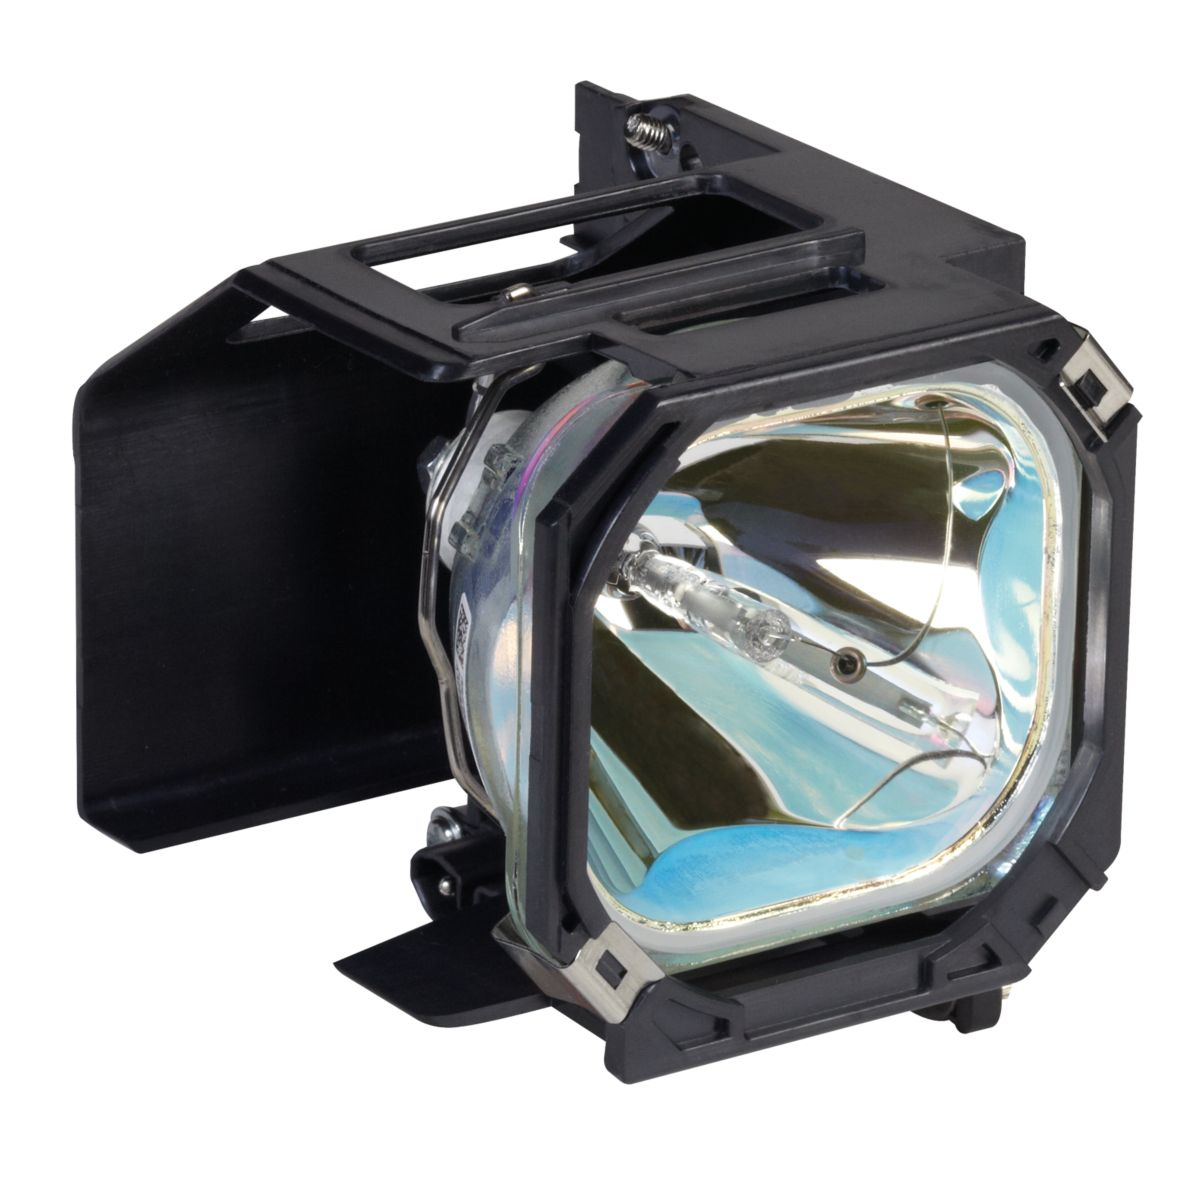 Mitsubishi Projection Tv Bulb Module Mitsubishi 915p043010 Projection Tv Lamp Replacement